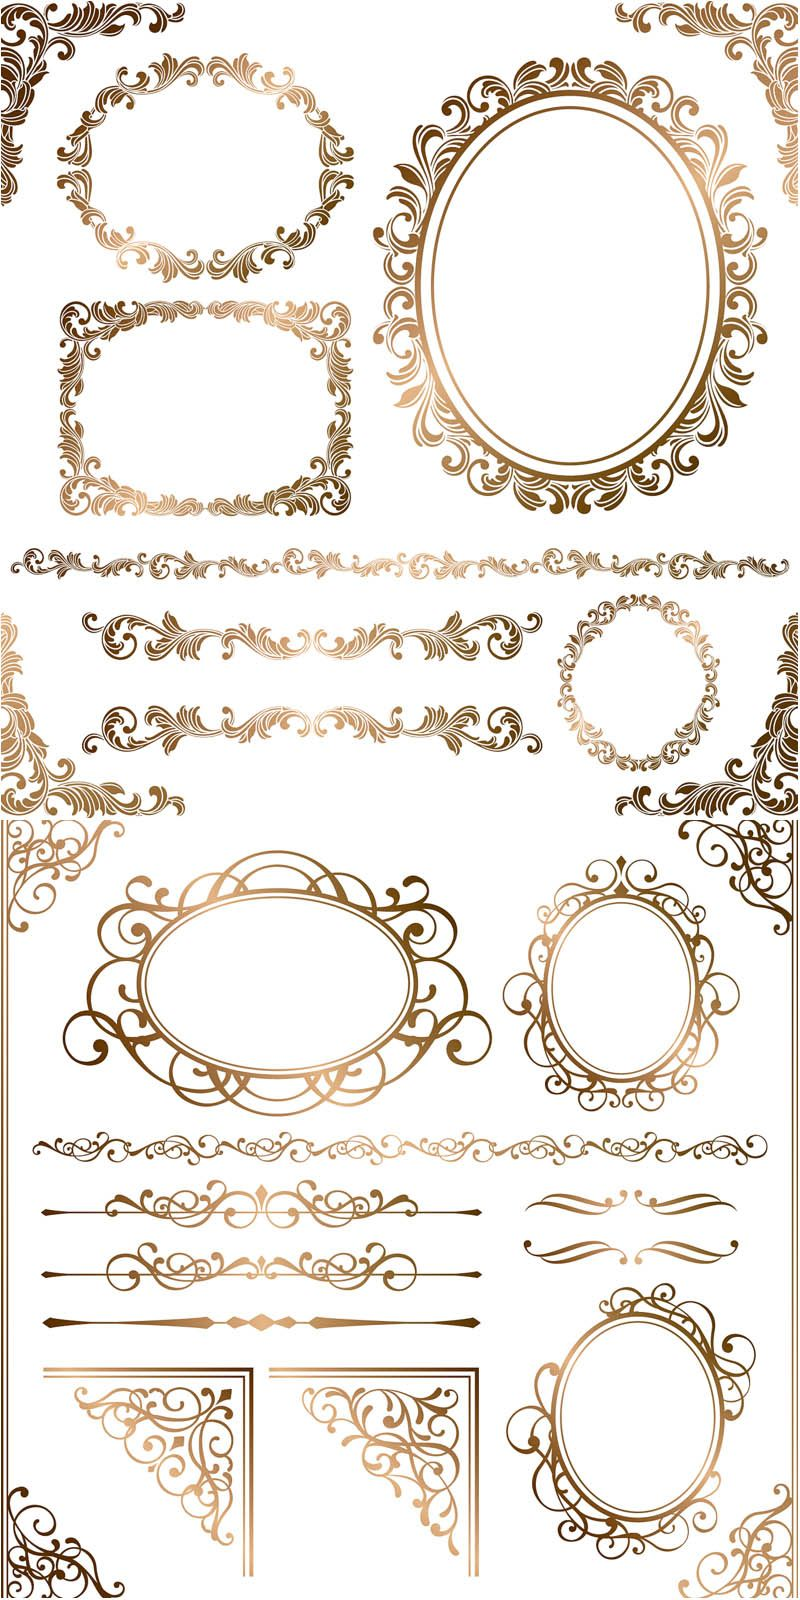 800x1600 Baroque Floral Frames, Corners And Borders Vector...ton More Free